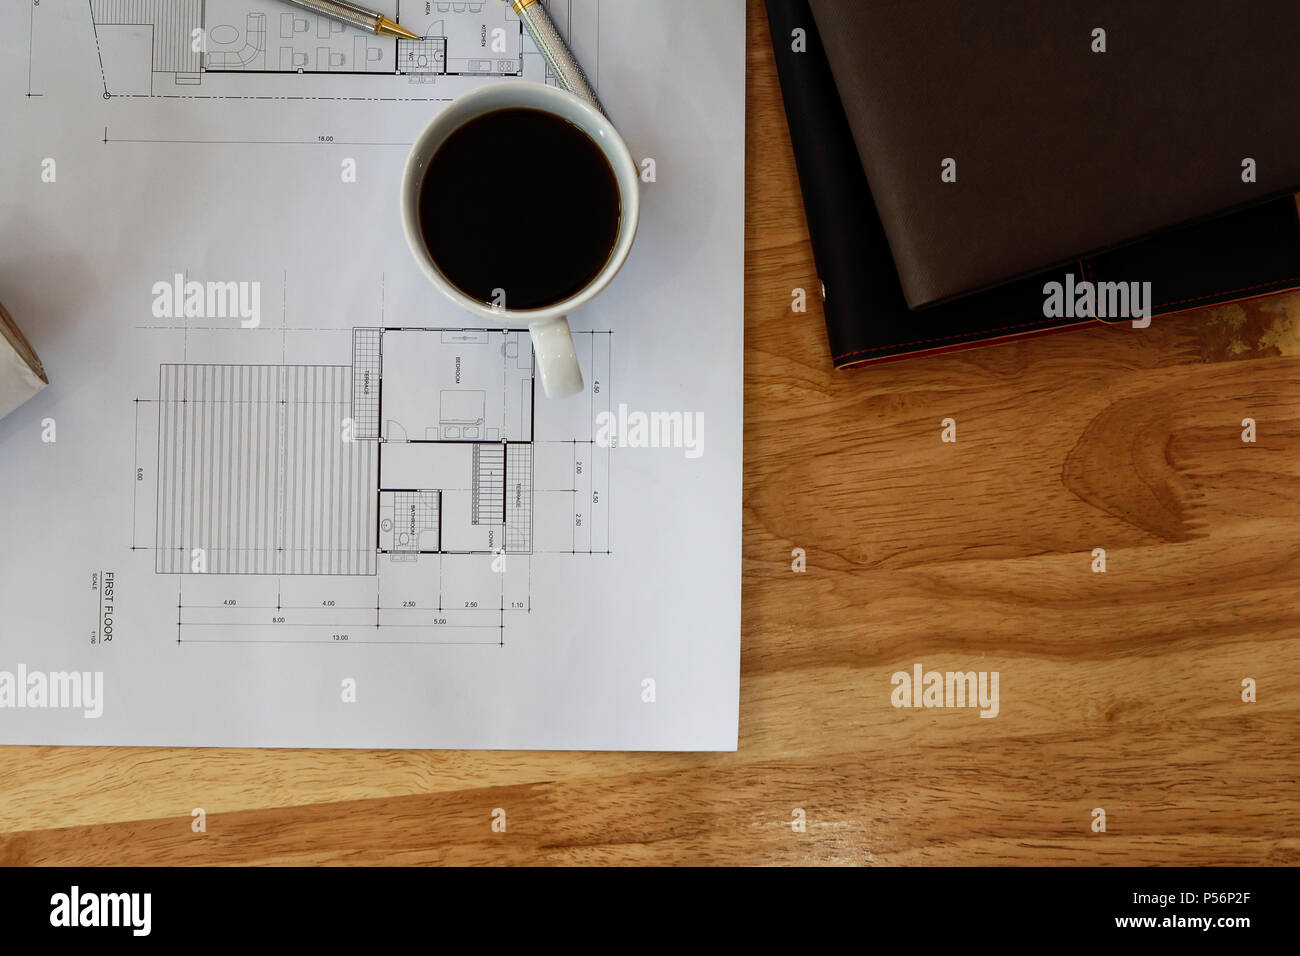 Top view of cup of coffee with measurement tool and blueprint, architectural concept - Stock Image